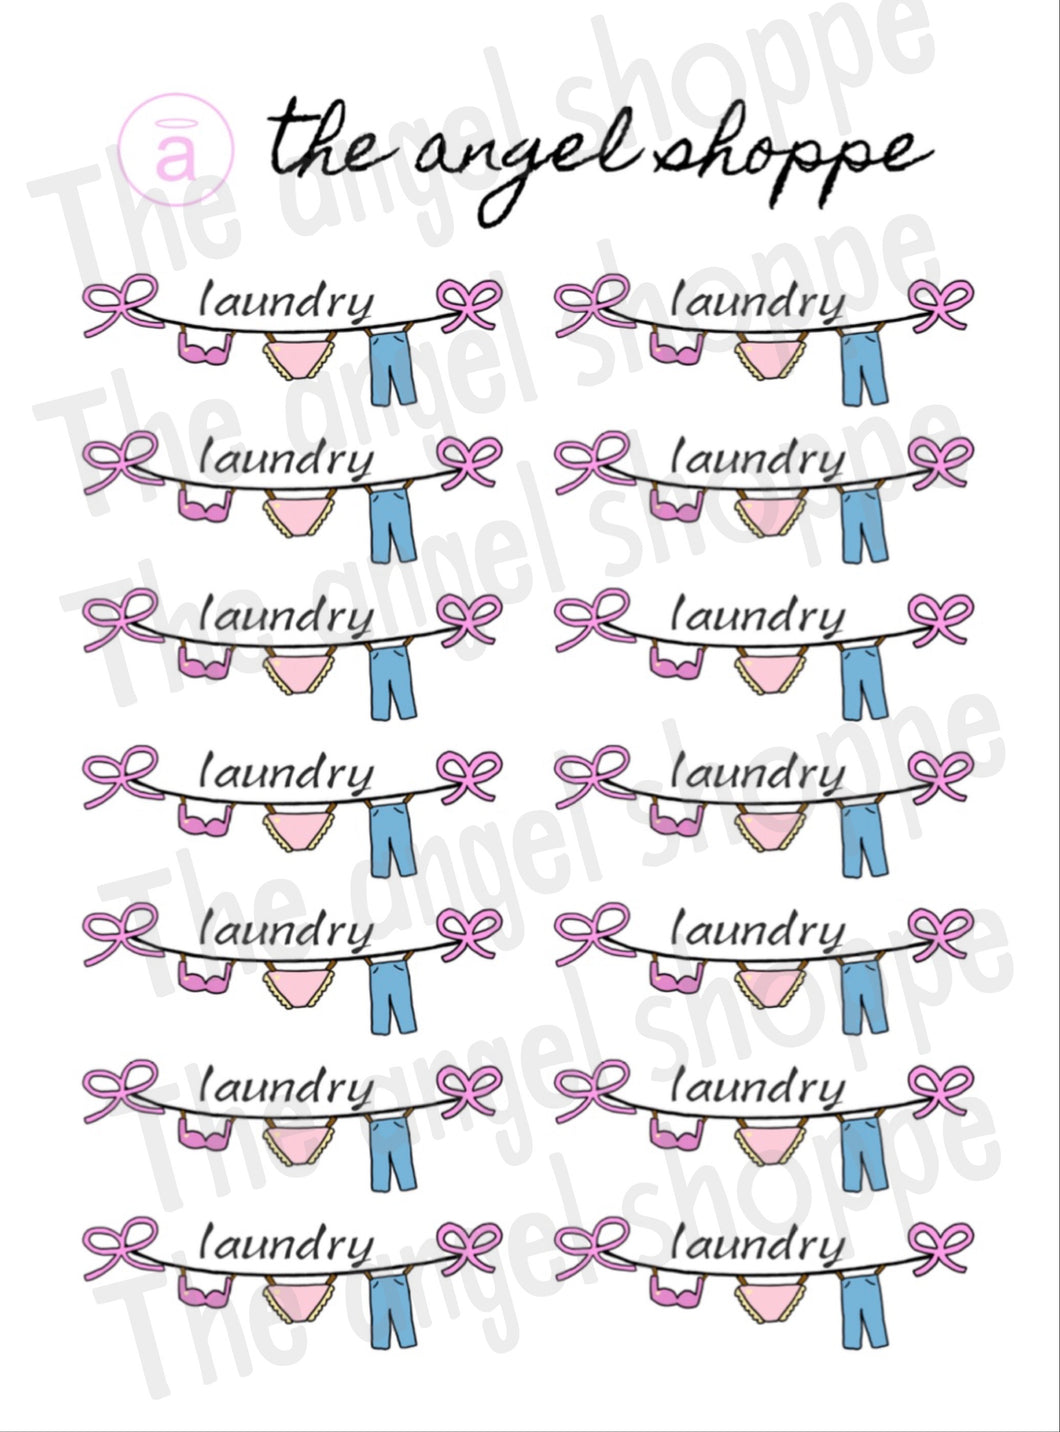 laundry stickers